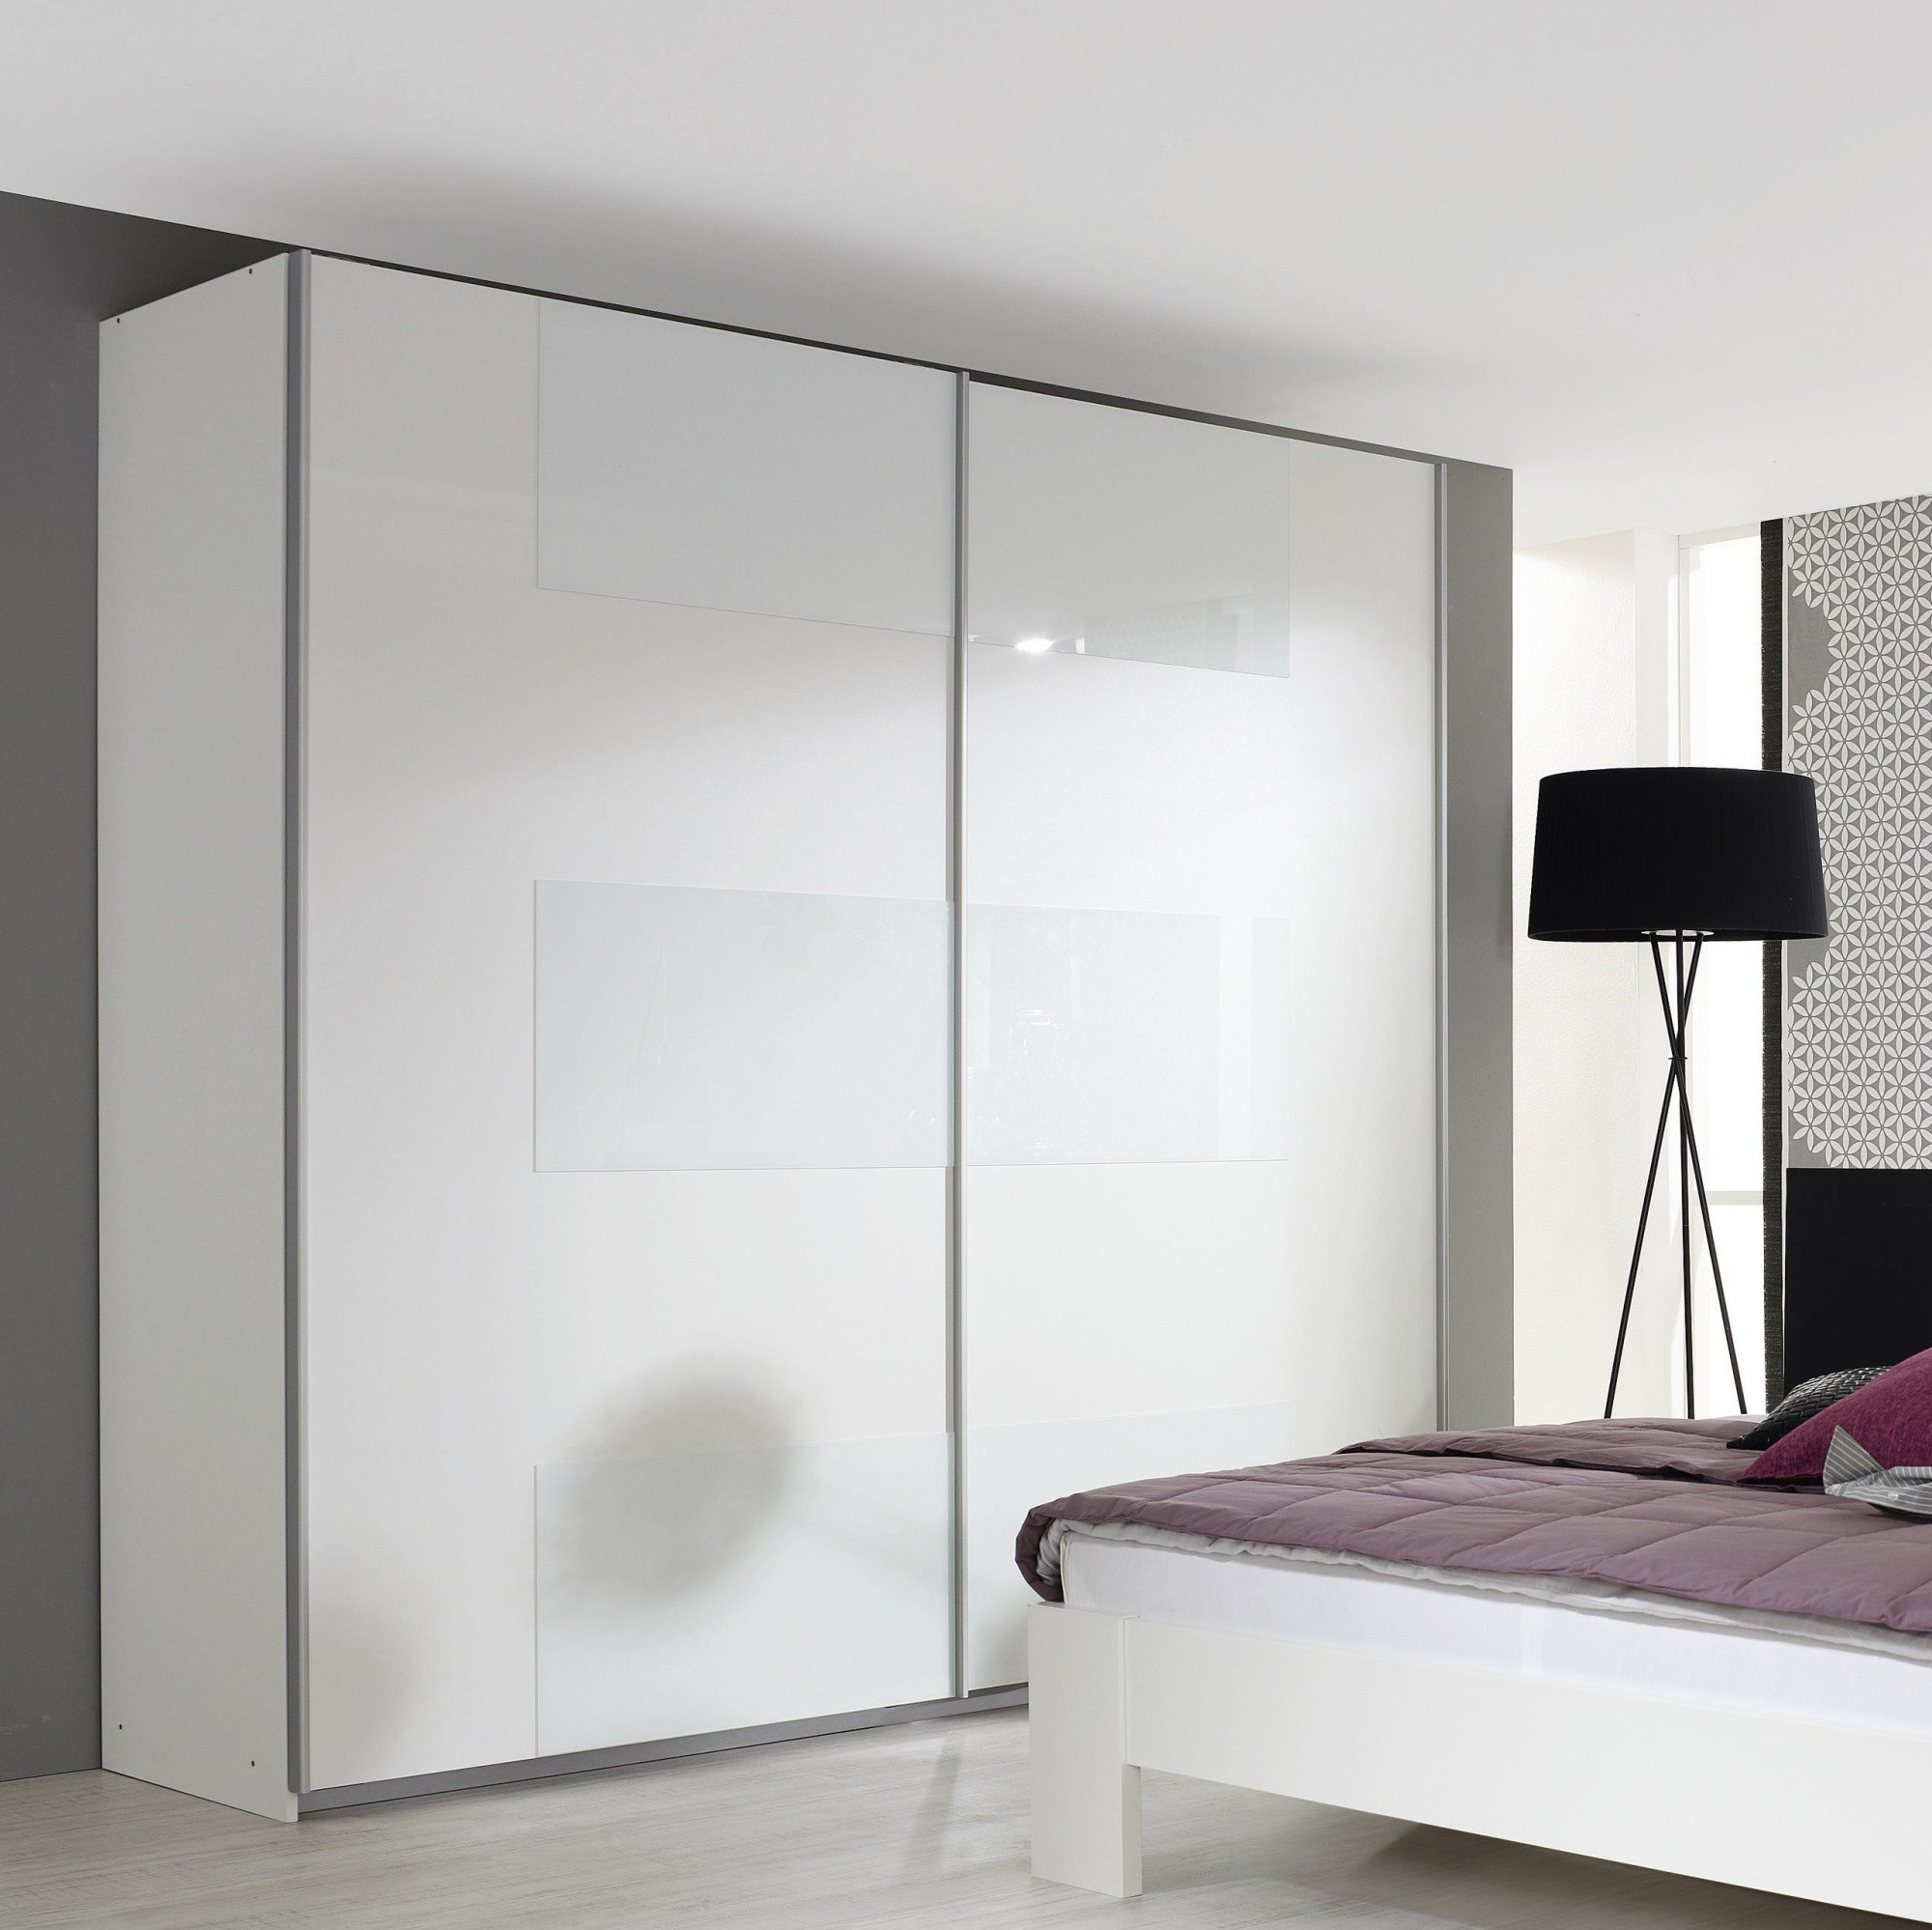 conforama armoire porte coulissante trendy attractive. Black Bedroom Furniture Sets. Home Design Ideas